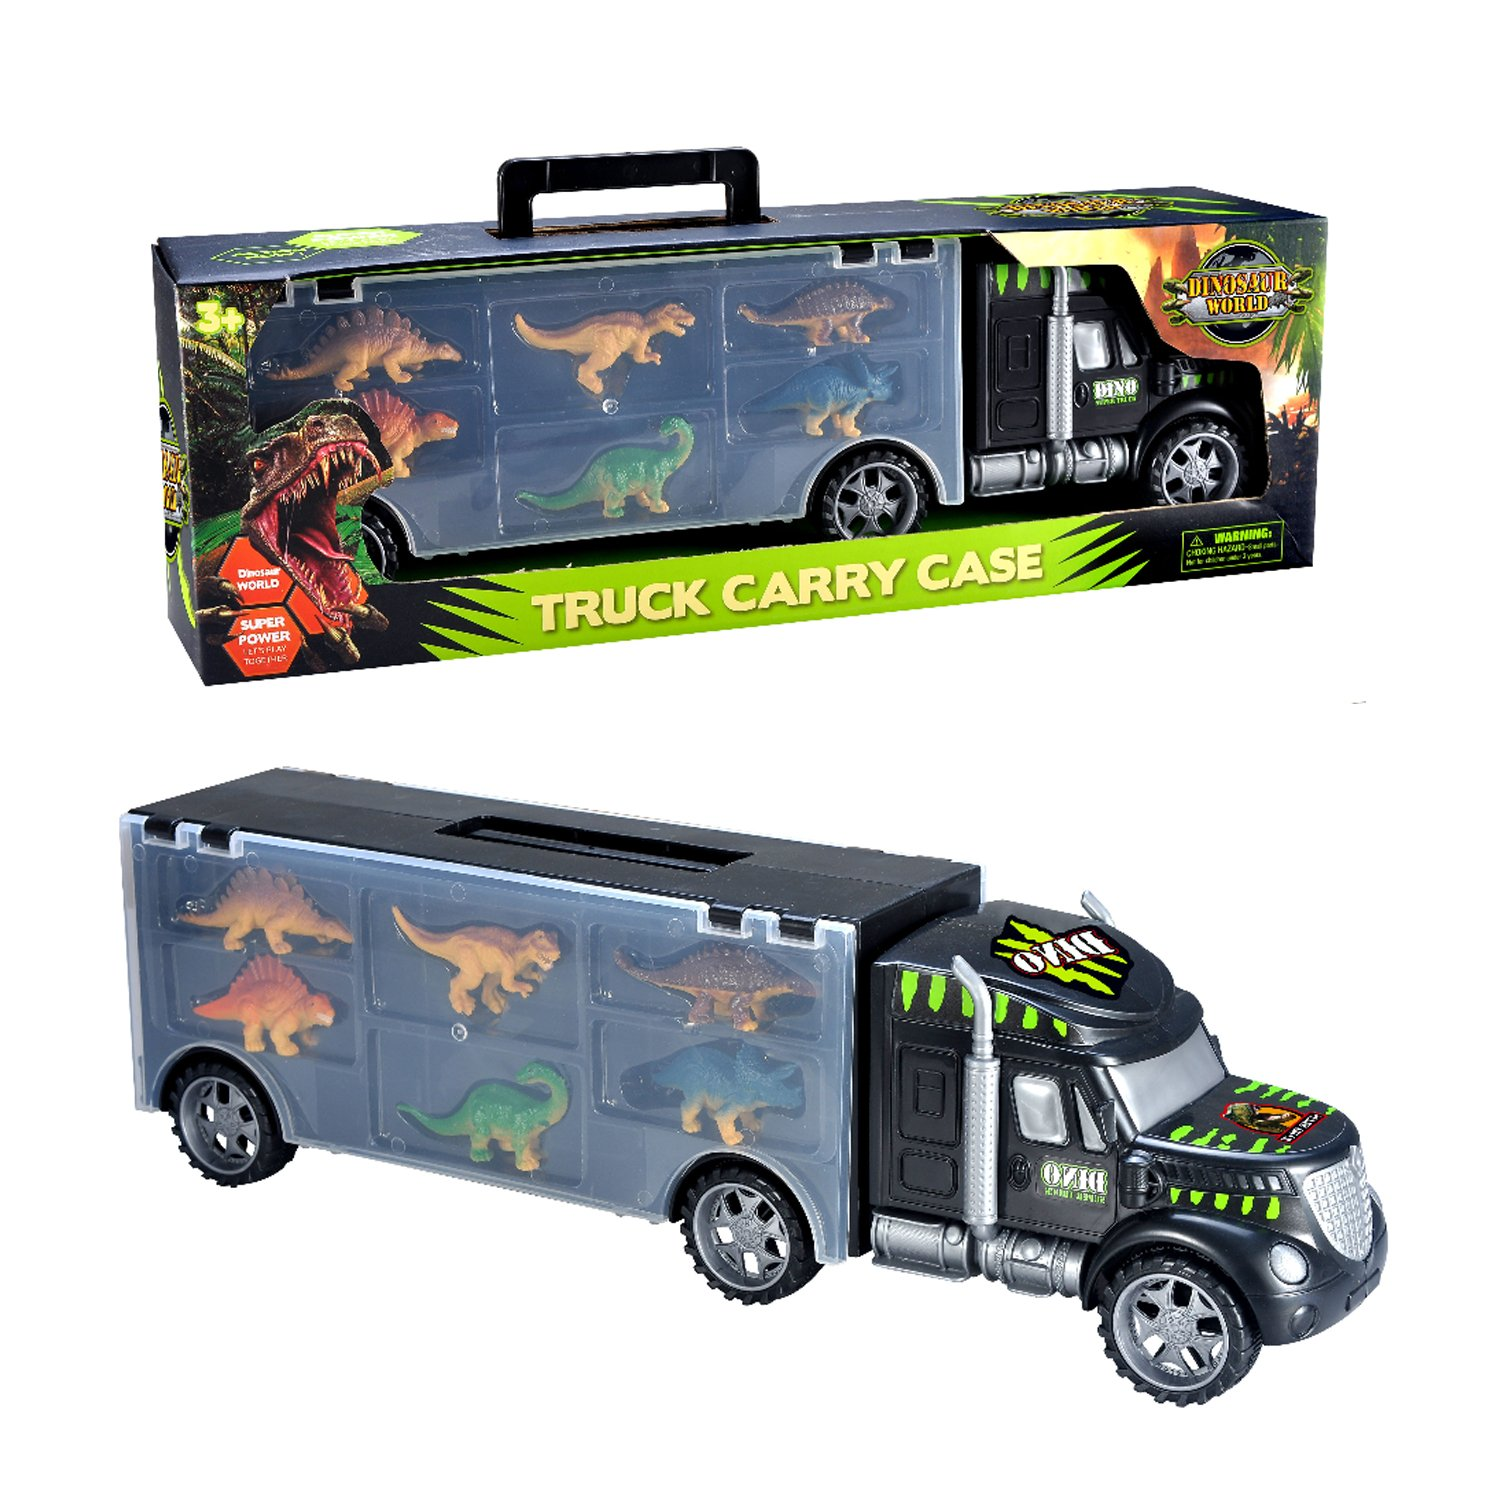 new Dinosaurs Transport Car Carrier Truck Toy with Dinosaur Toys